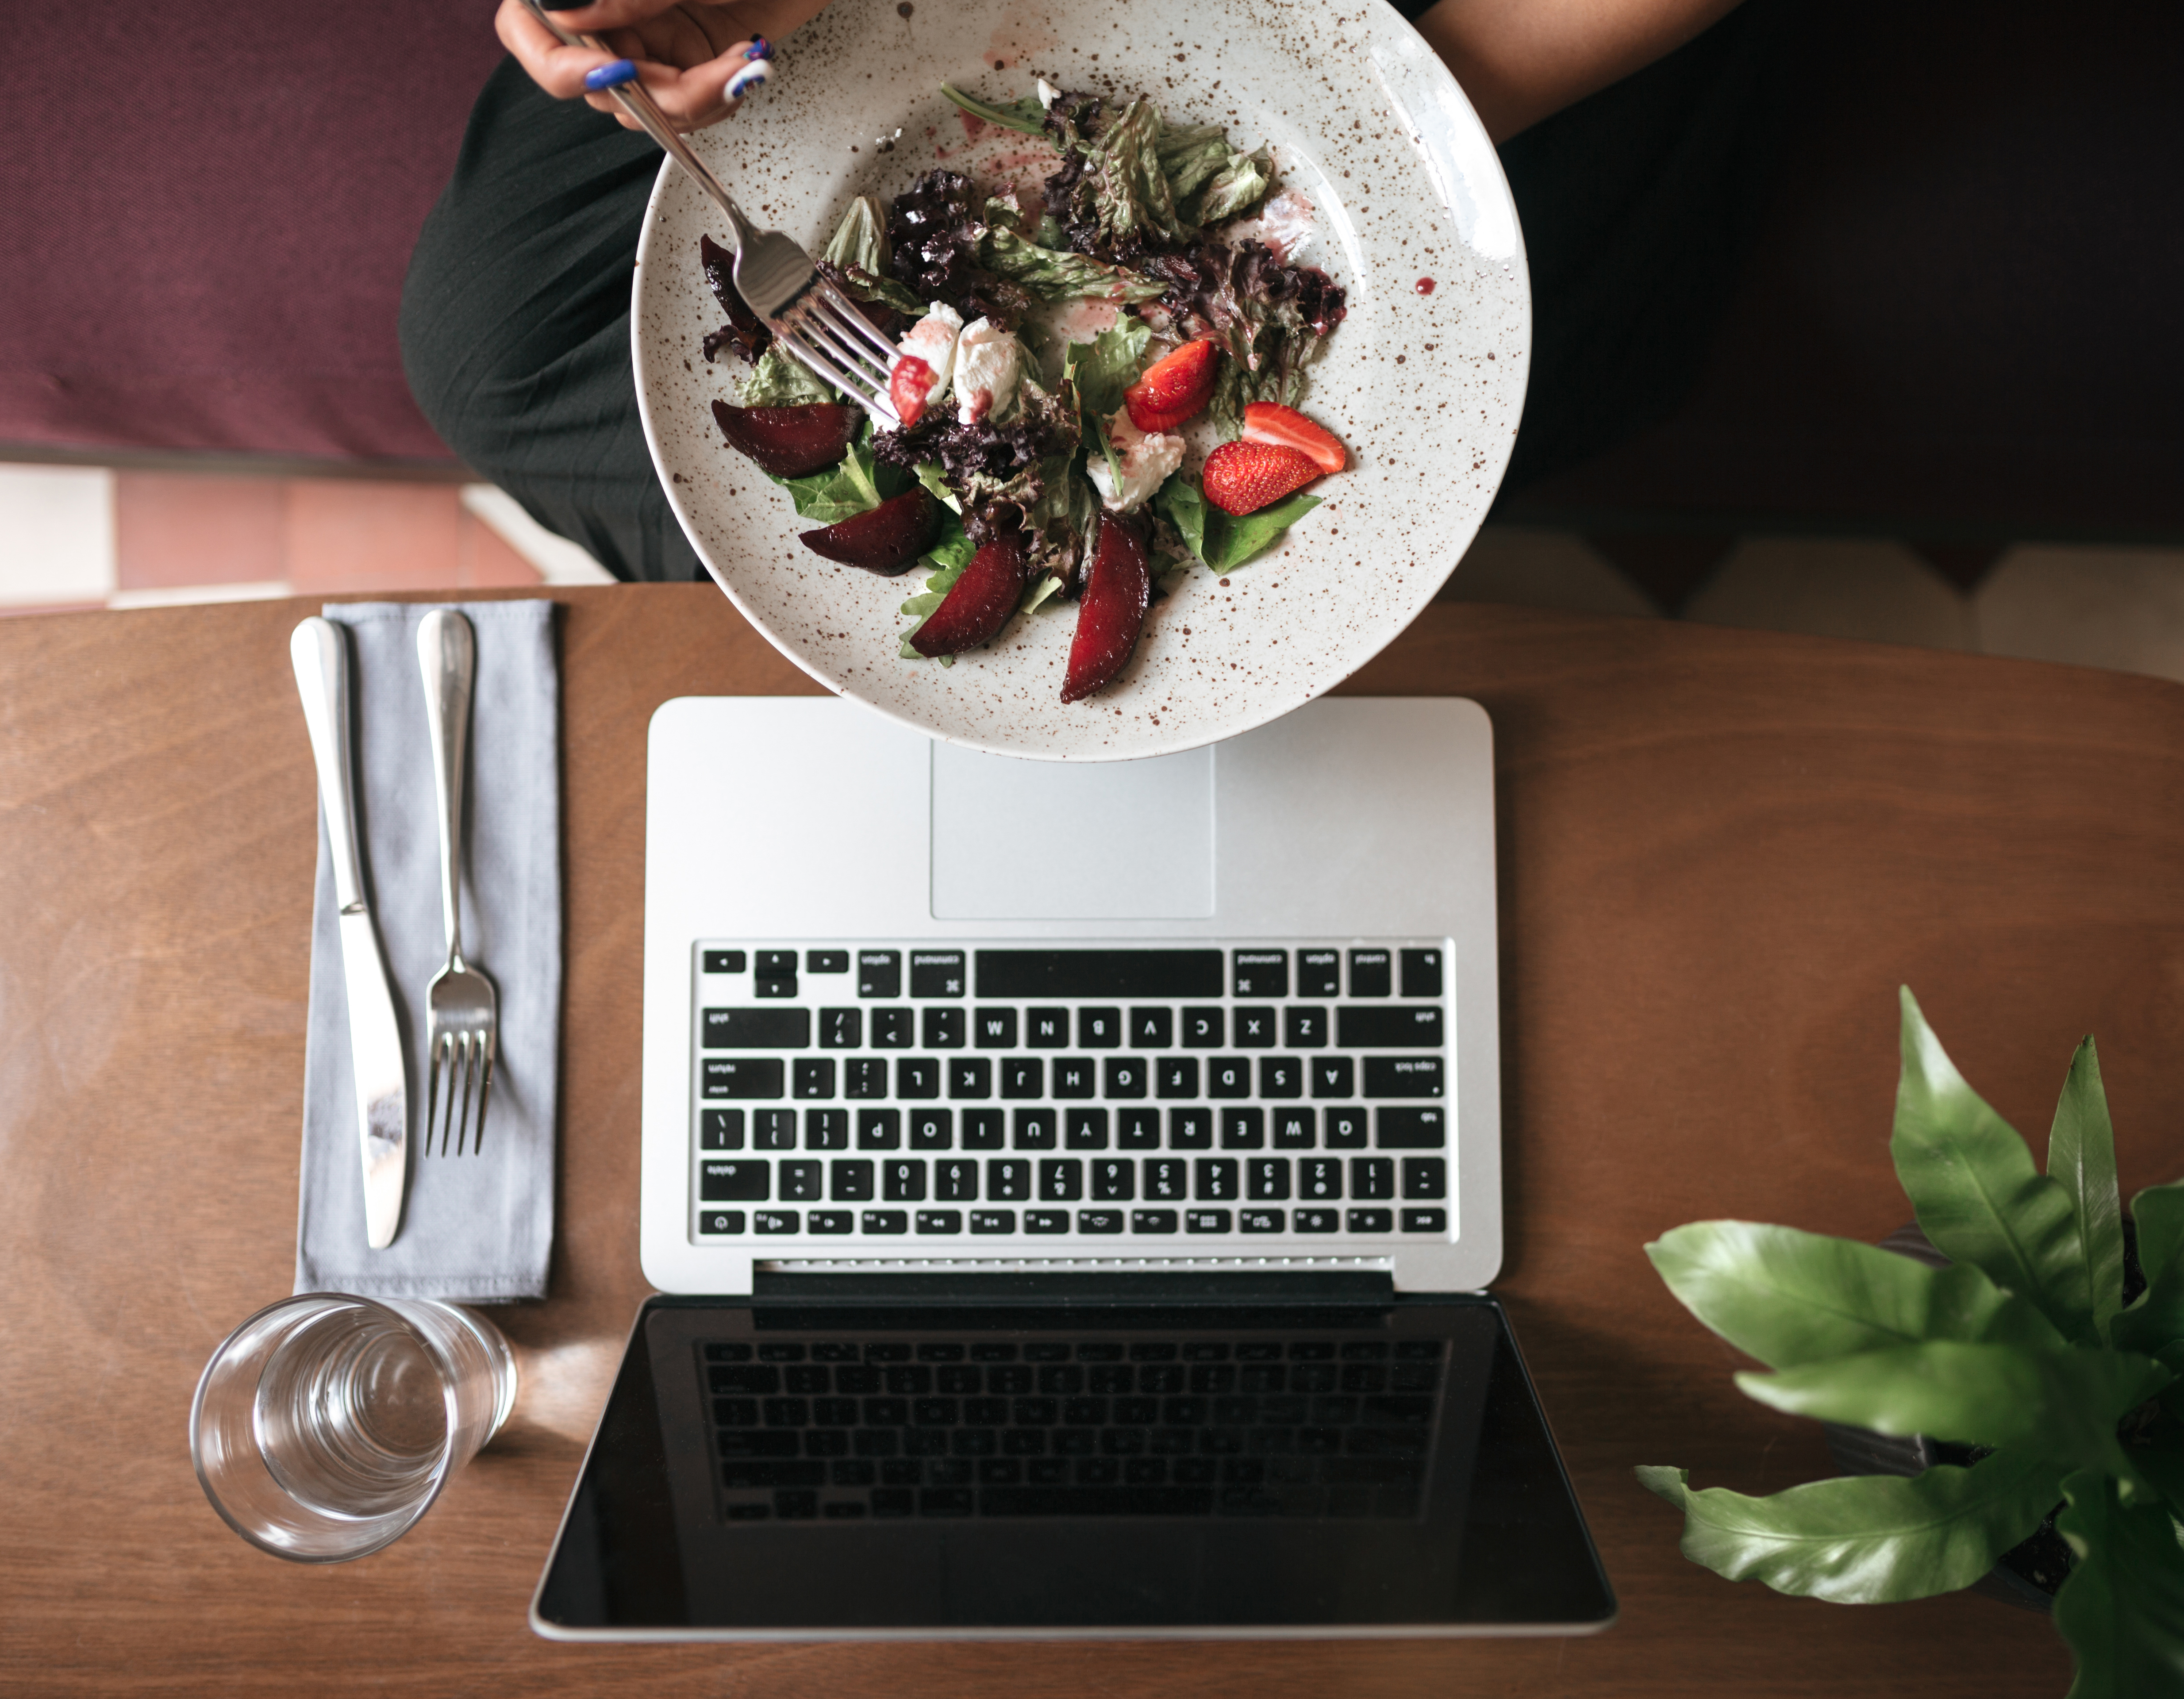 4 Tech Trends The Restaurant Industry Should Be Aware Of